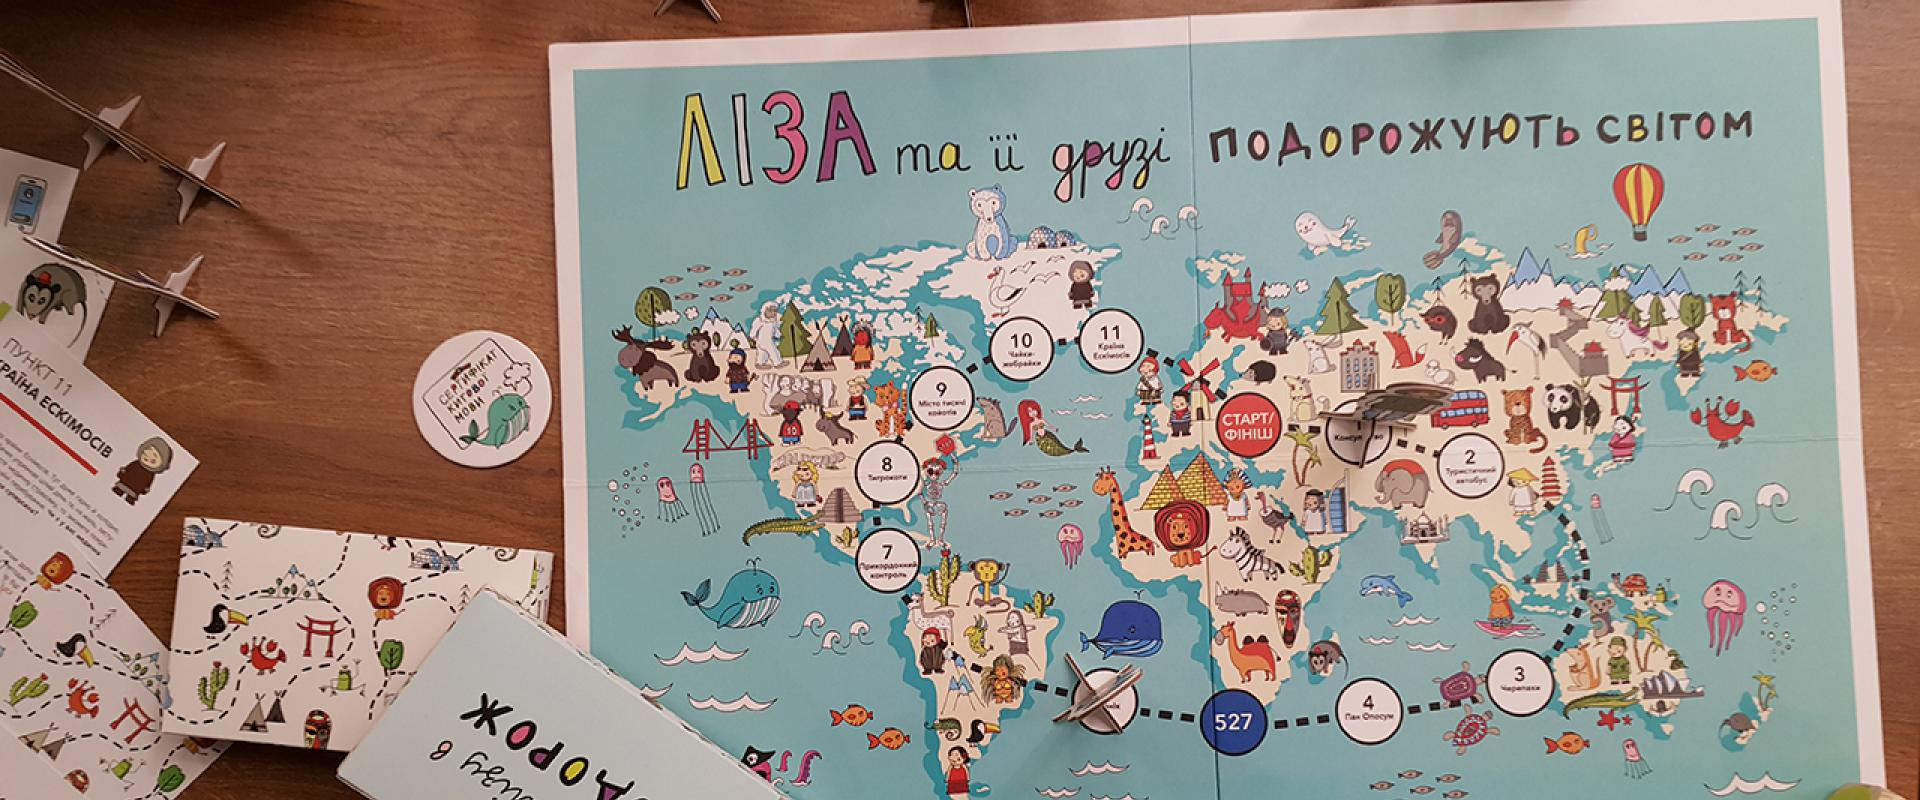 THE GAME OF LIFE Board Game in Ukraine Teaches Children About Human Trafficking